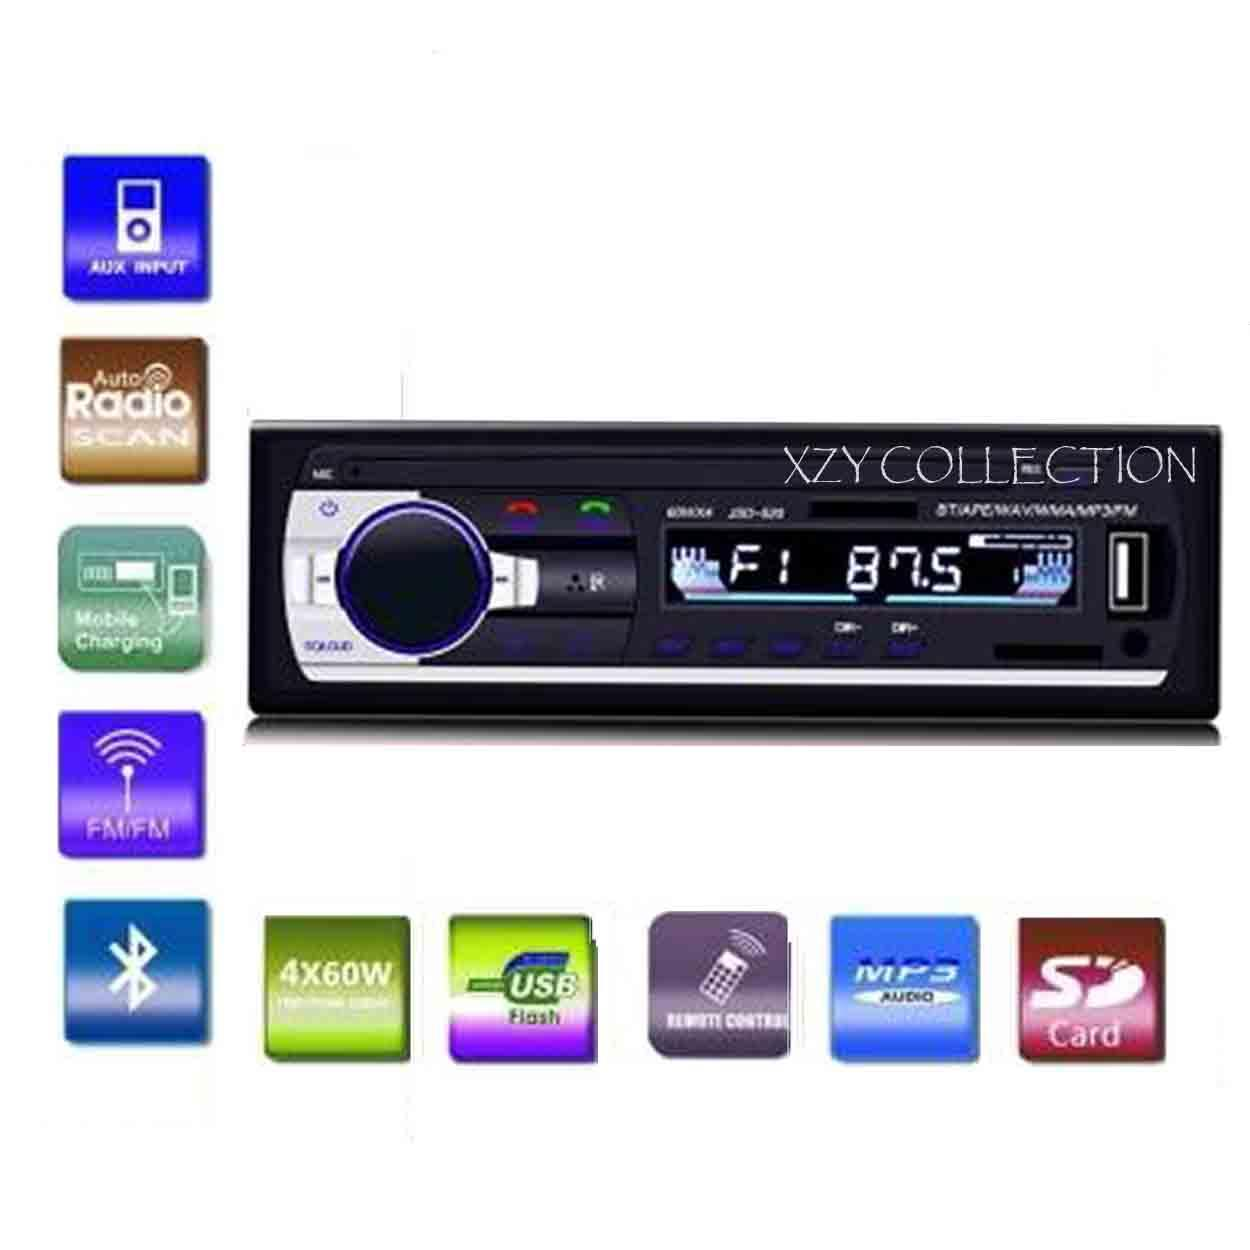 Car Stereo For Sale Cars Online Brands Prices Clarion Radio Audio On Panasonic Wiring Harness Bluetooth Fm Mp3 Aux With Usb Sd